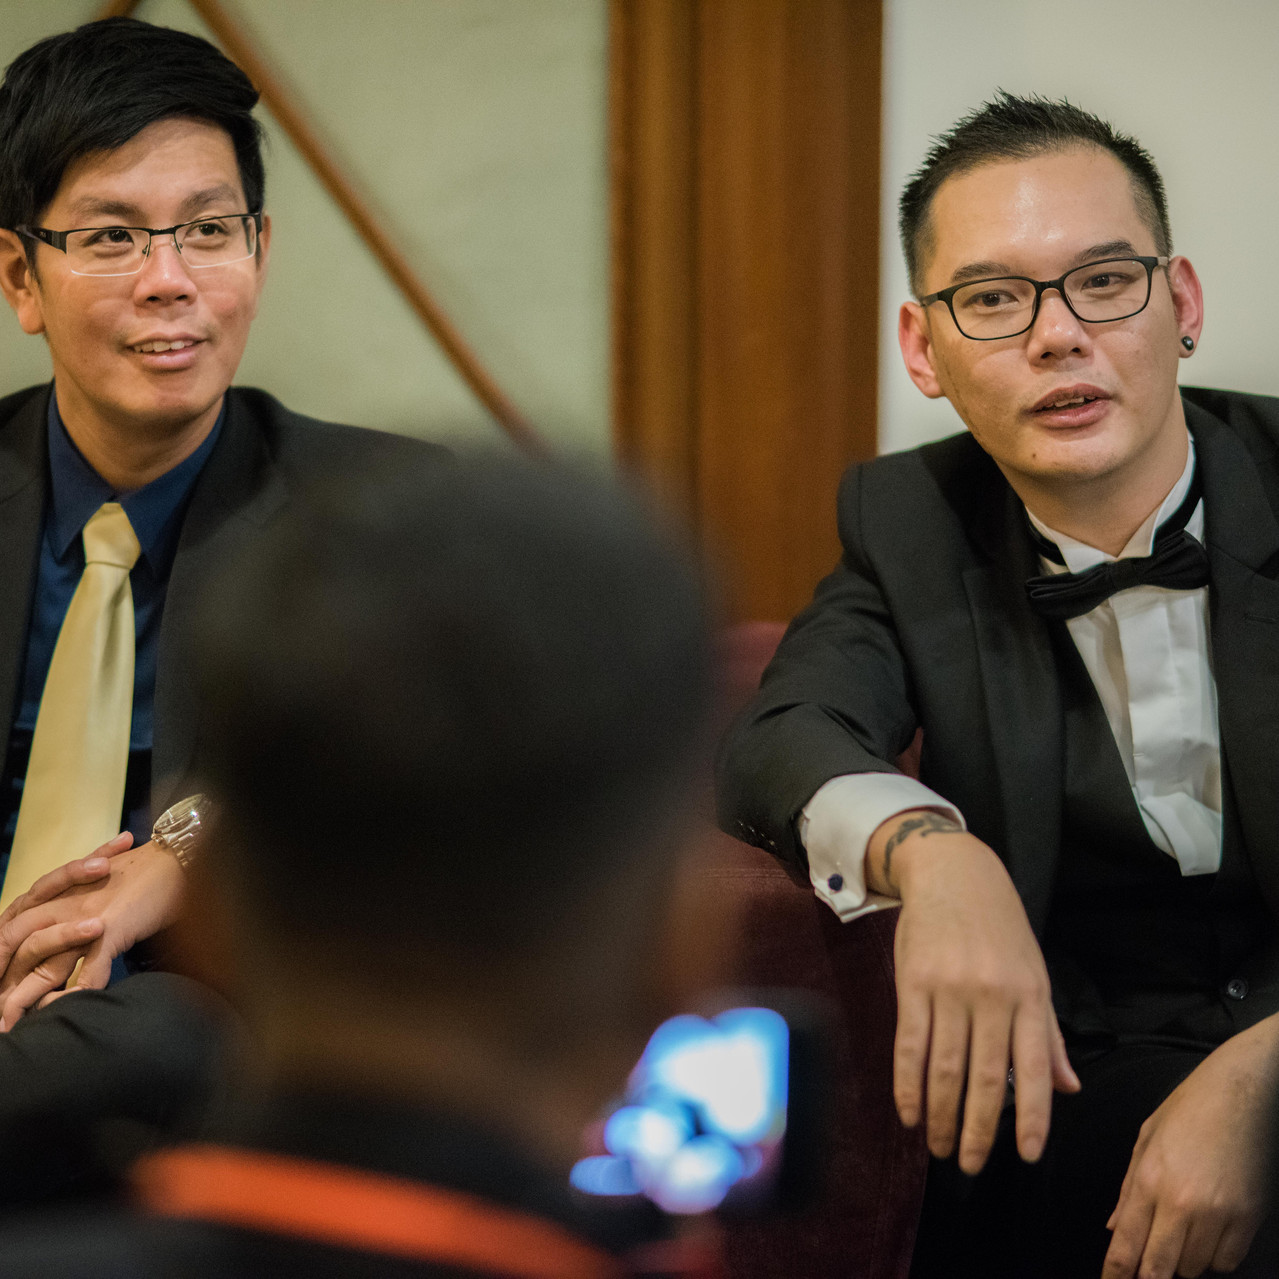 C144 producer Aaron Lim (right) and dire